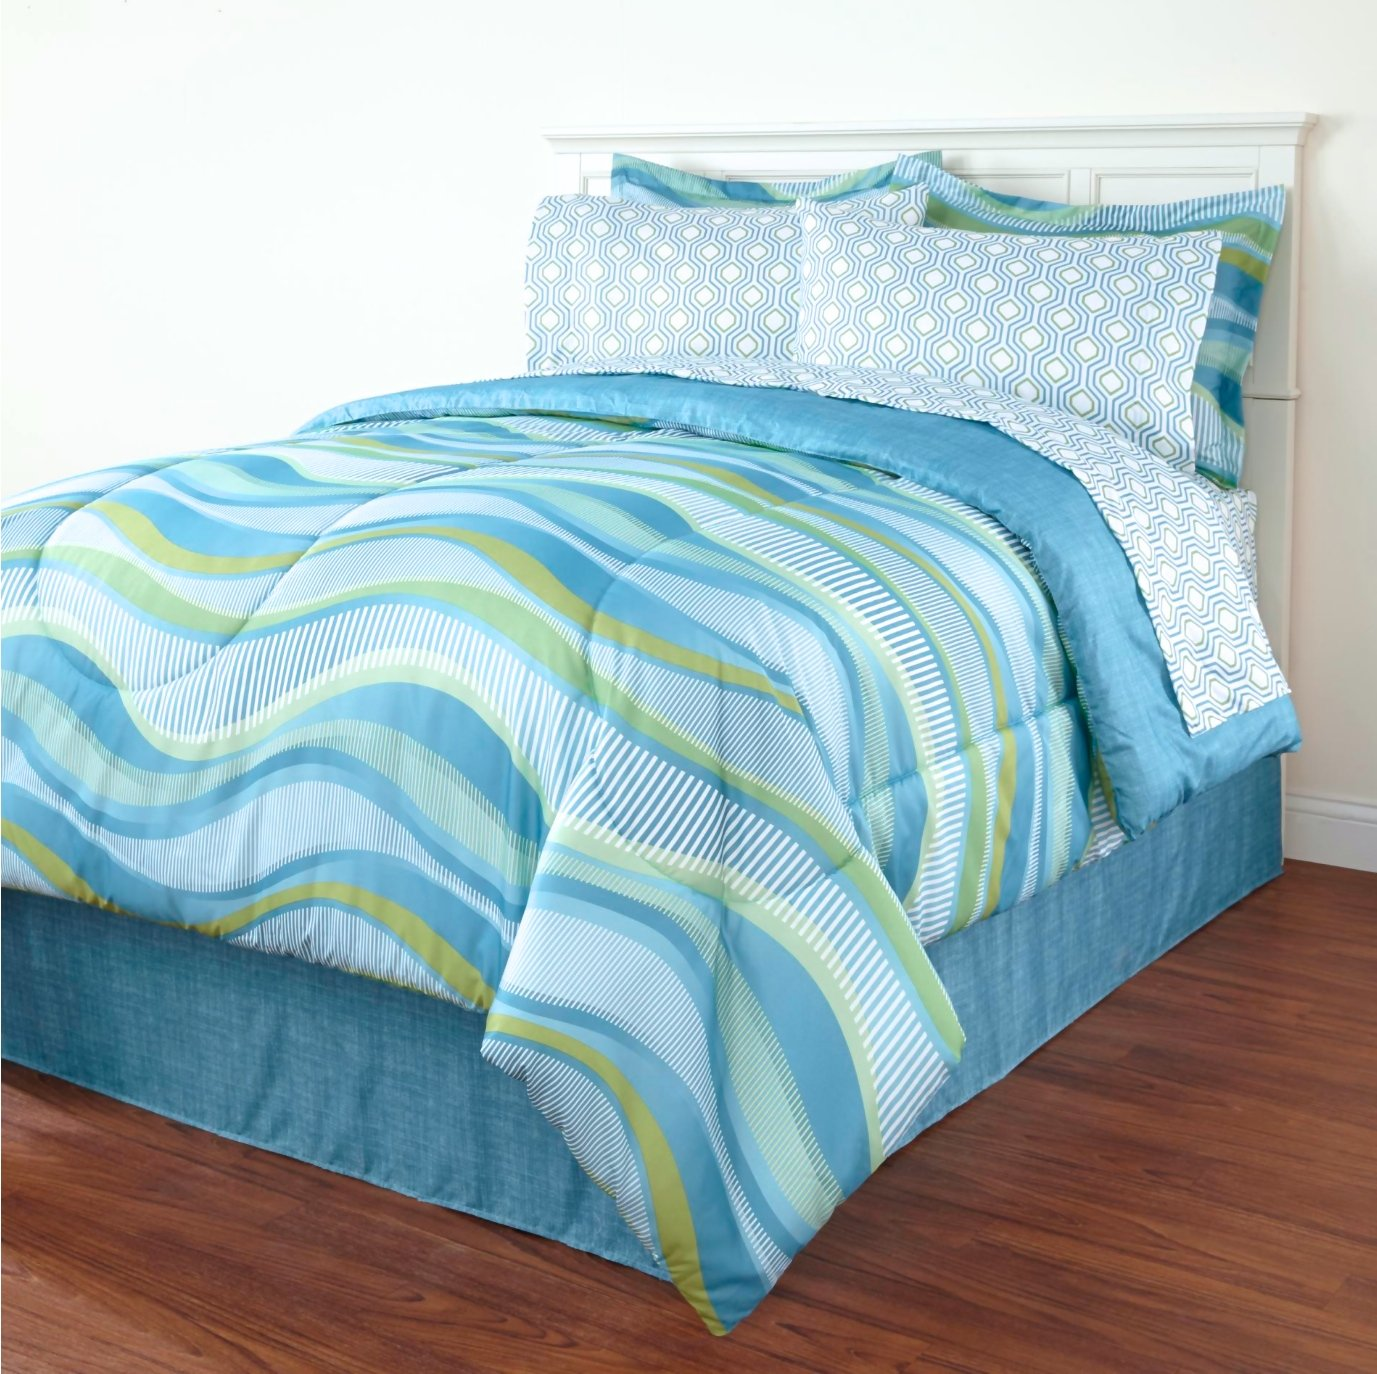 Blue Wave Queen Comforter Set (8 Piece Bed in a Bag) Beach House